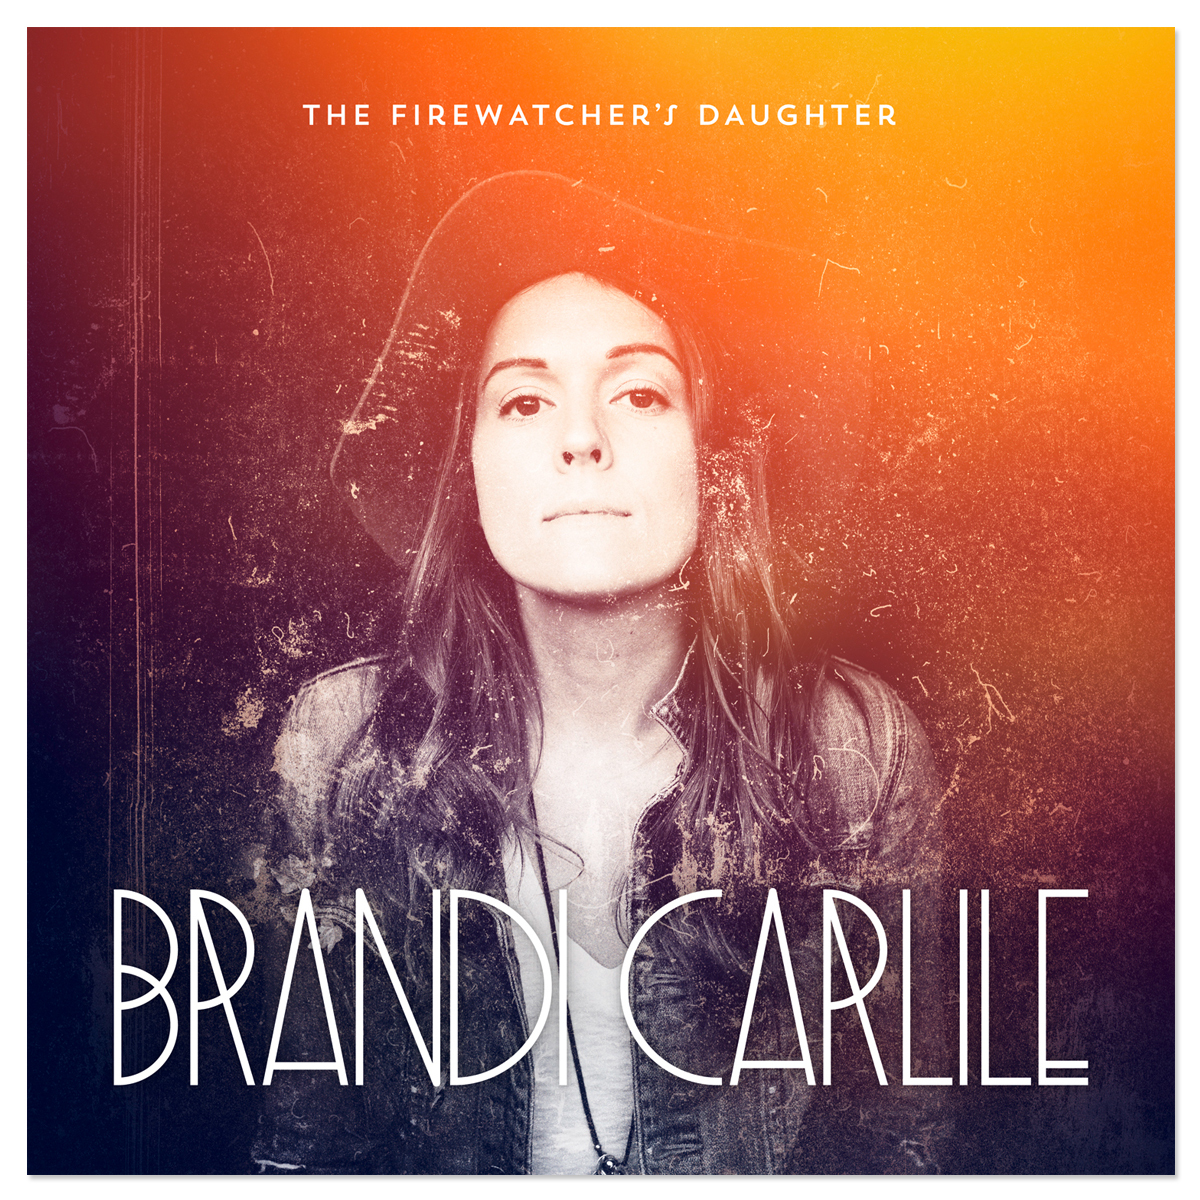 Brandi Carlile - The Firewatcher's Daughter (Digital Download - MP3)